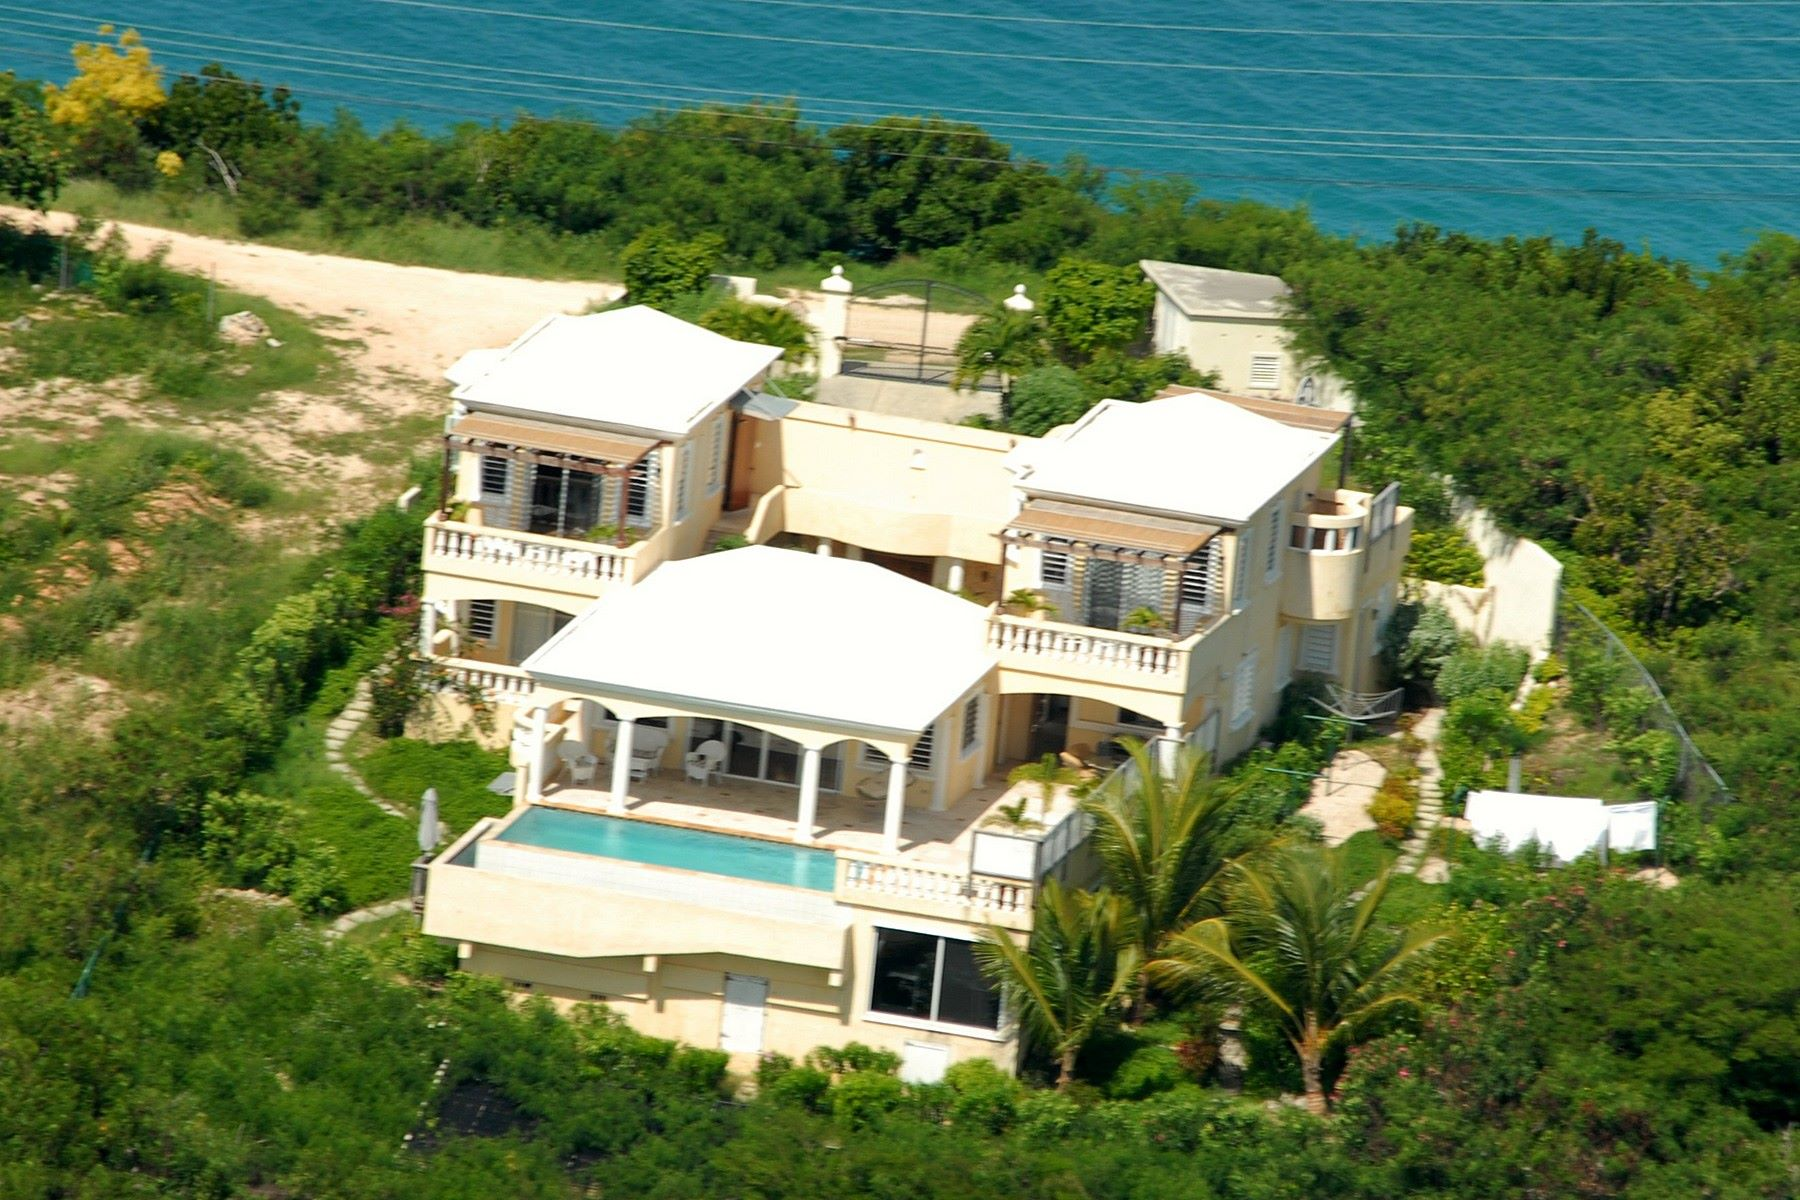 Casa Unifamiliar por un Venta en Edward's Edifice North Hill Other Anguilla, AI 2640 Anguila